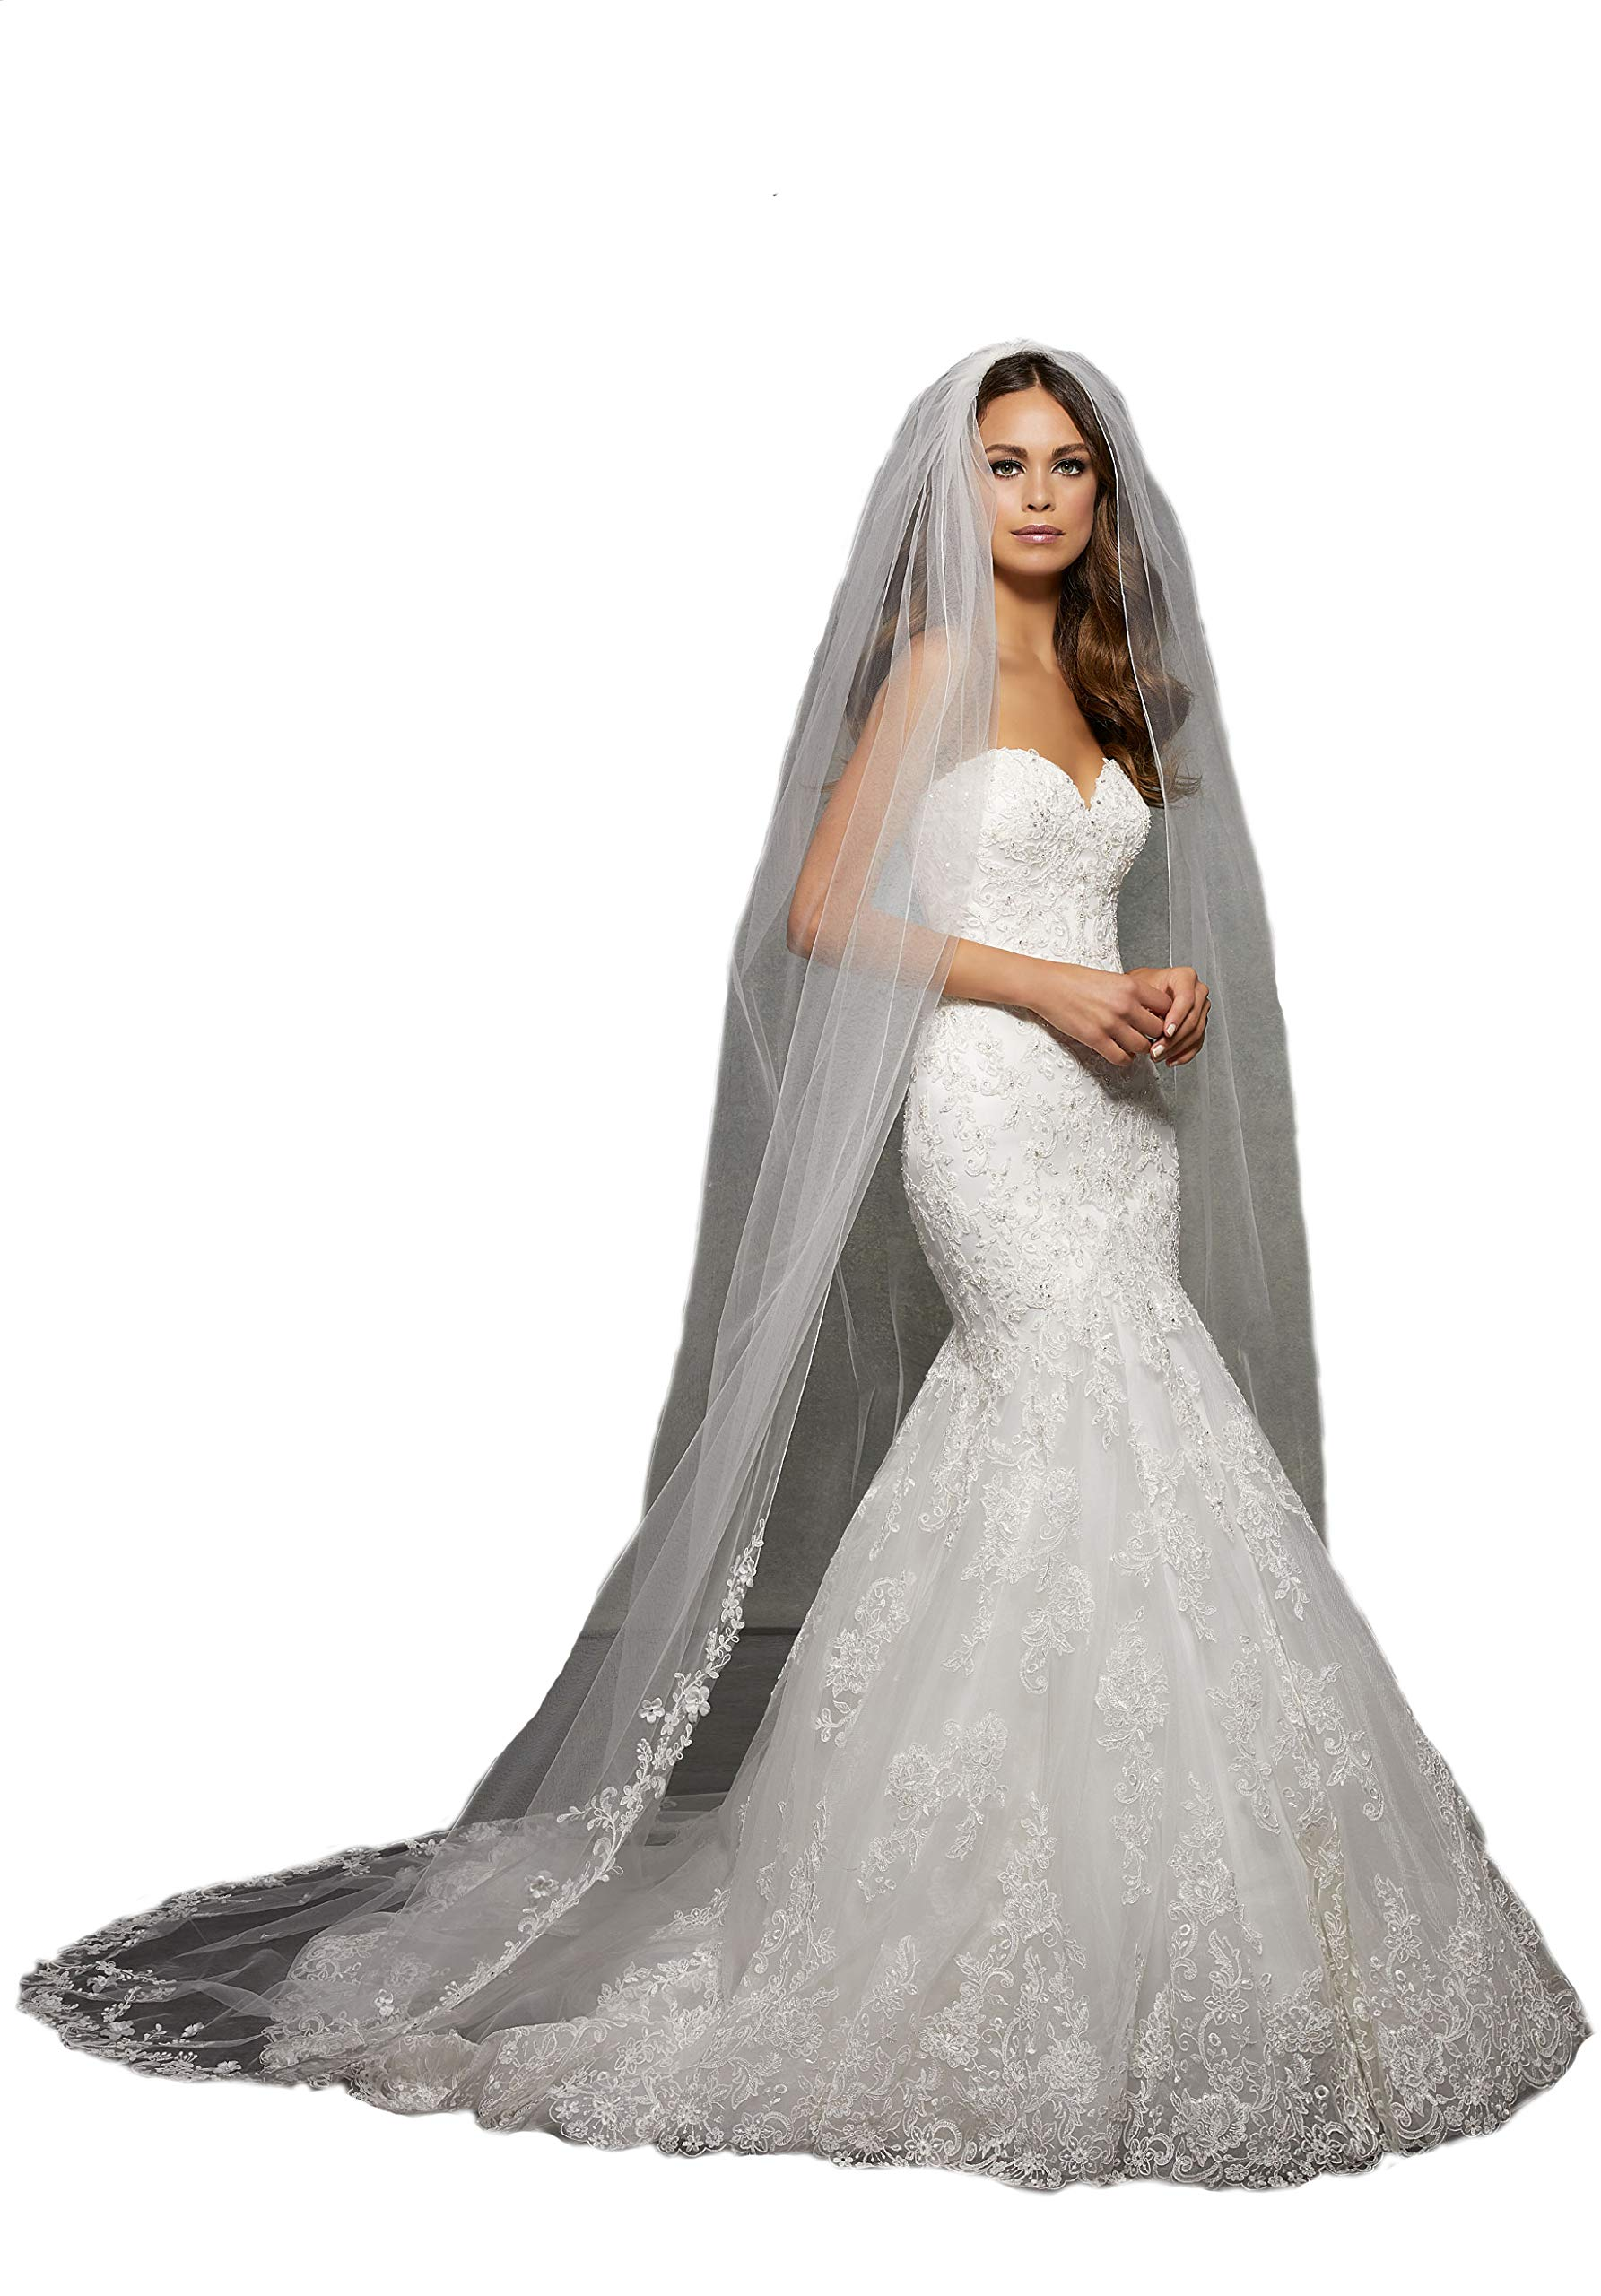 Passat Pale Ivory Single-Tier 3M Cathedral Wedding Bridal Veil with Lace Beaded with Rhinestones VL1054